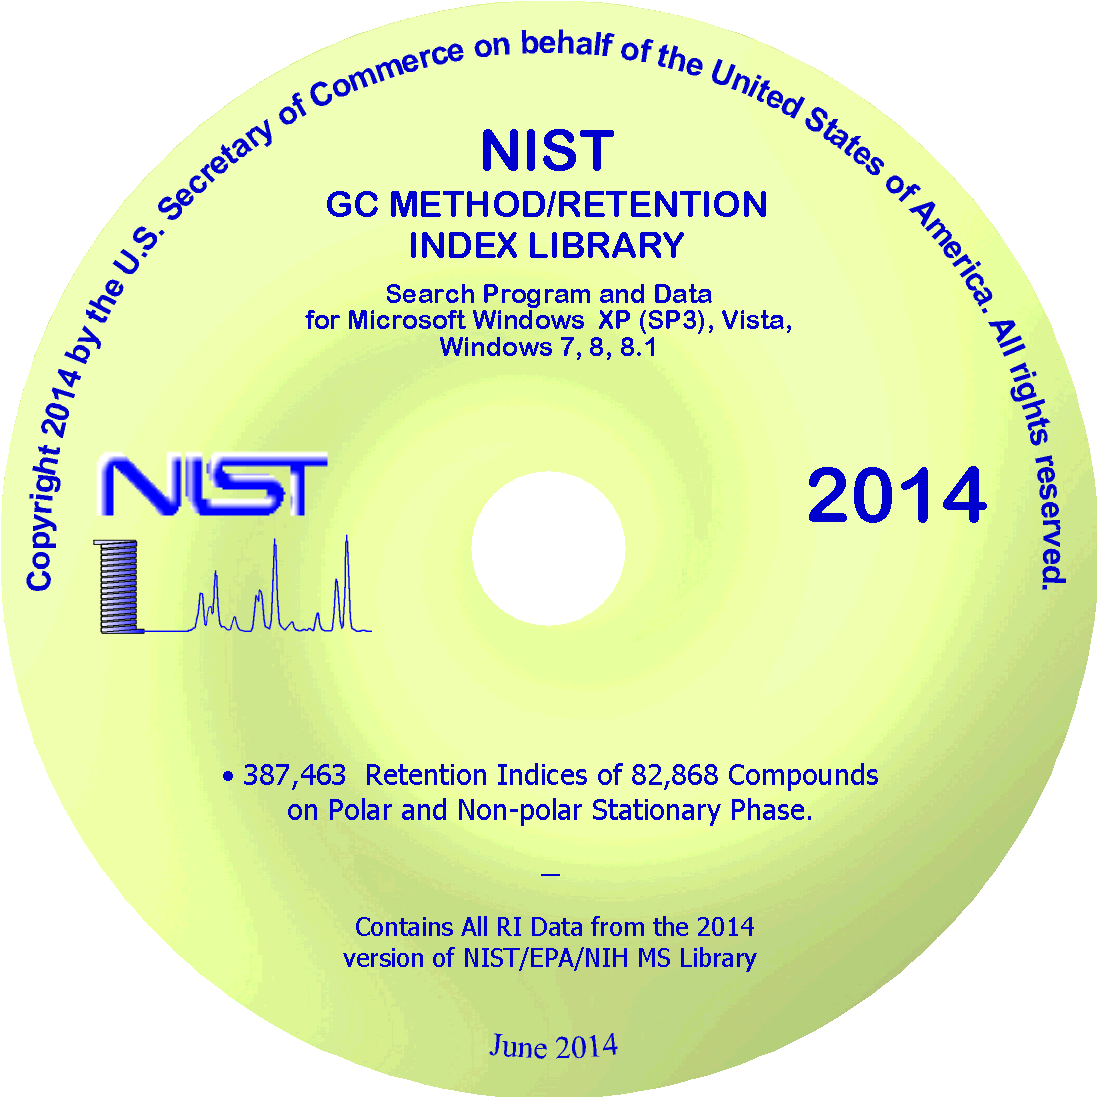 NIST14 GC Methods & RI Database